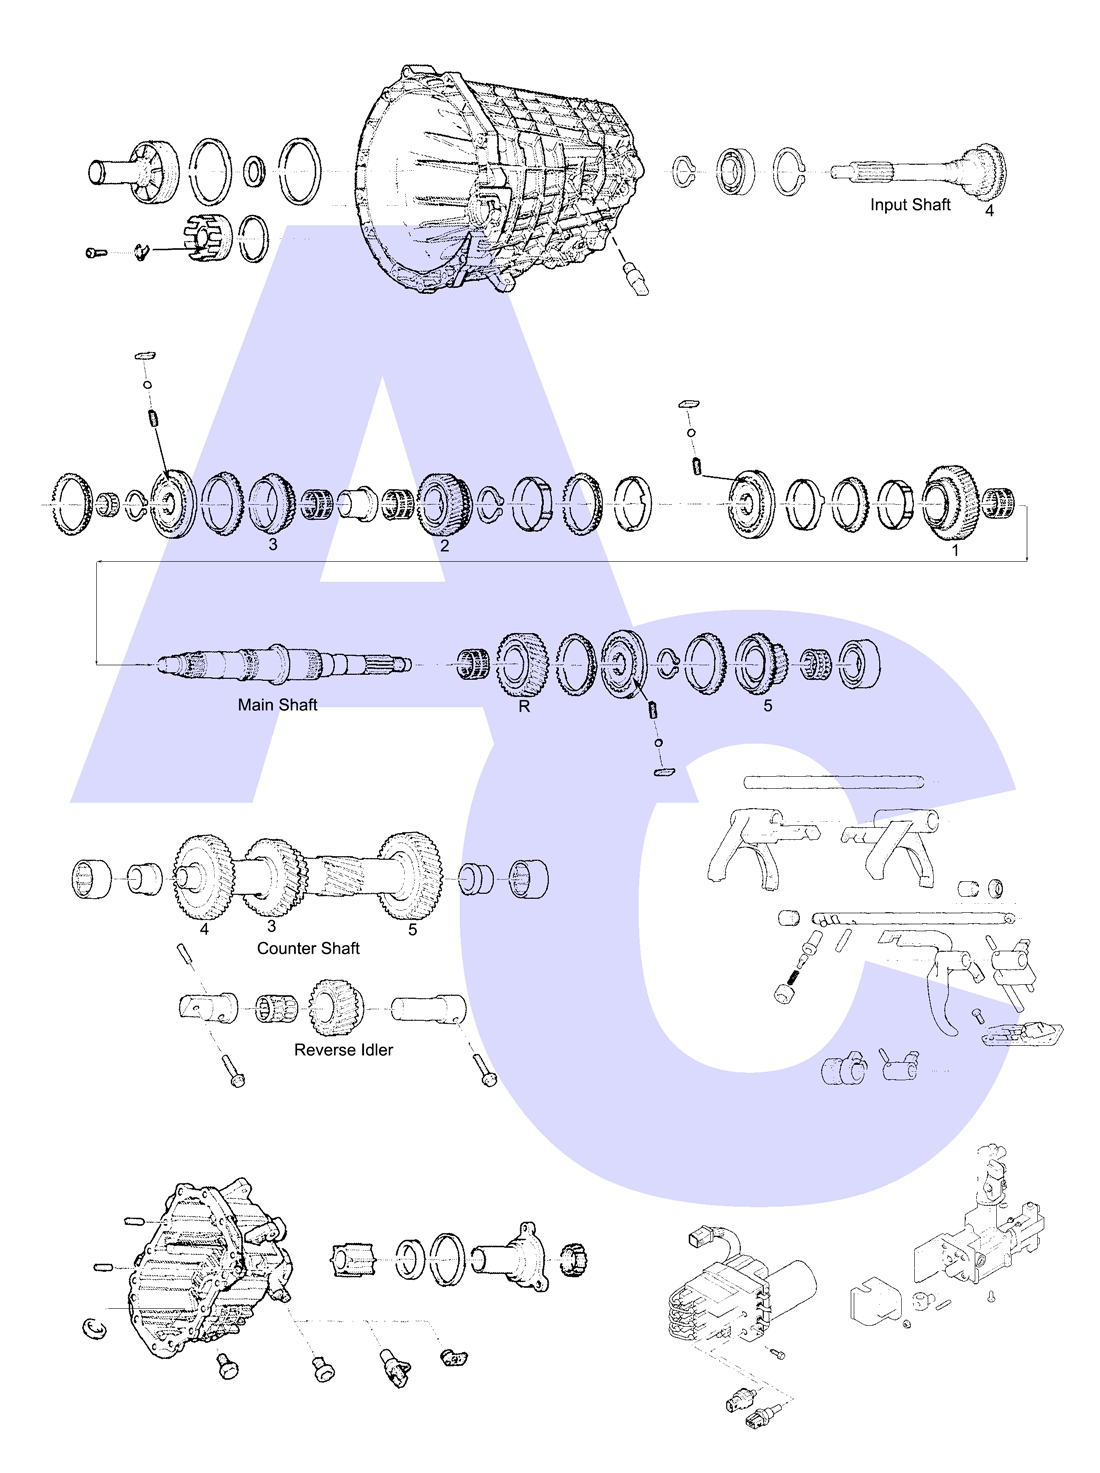 Mt75 Manual Transmission Parts Catalogue Automatic Choice Ford Standard Diagrams